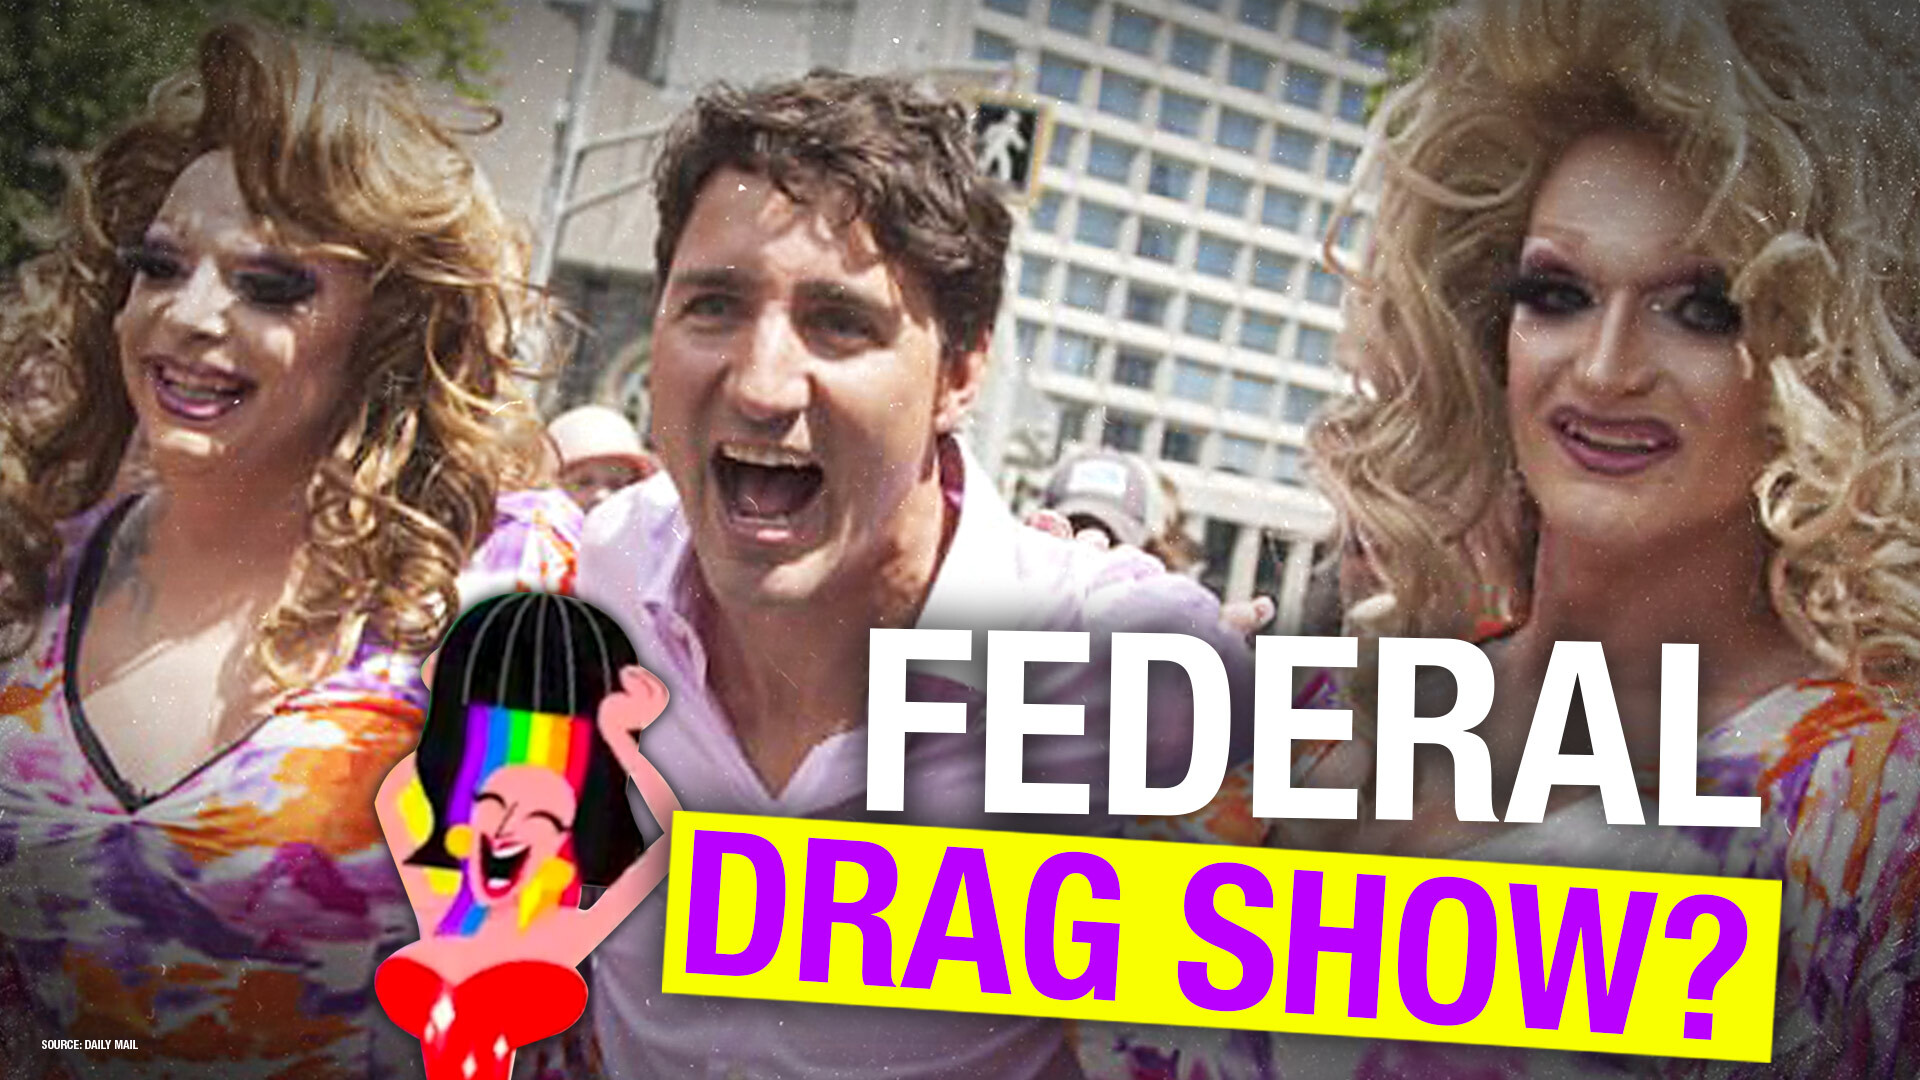 """Trudeau's enviro office holds """"Draganza"""" workshop (during work hours)"""